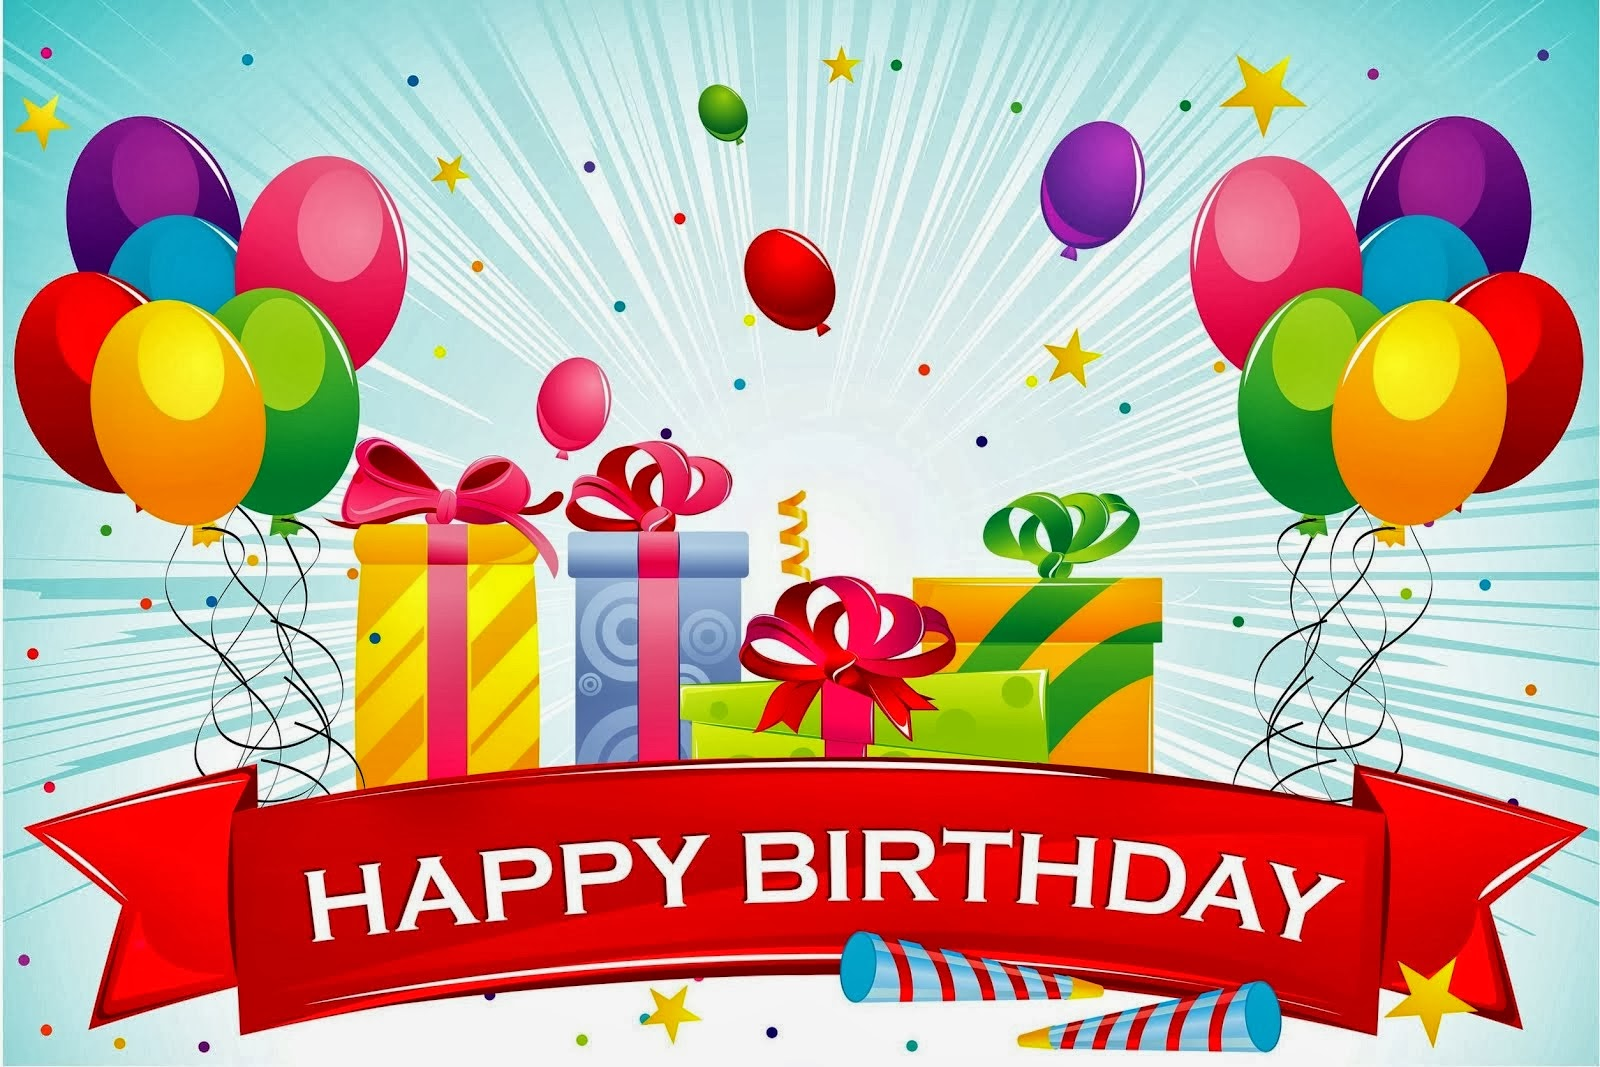 birthday message wallpaper ; 20-Awesome-Happy-Birthday-Wishes-HD-Wallpapers-3